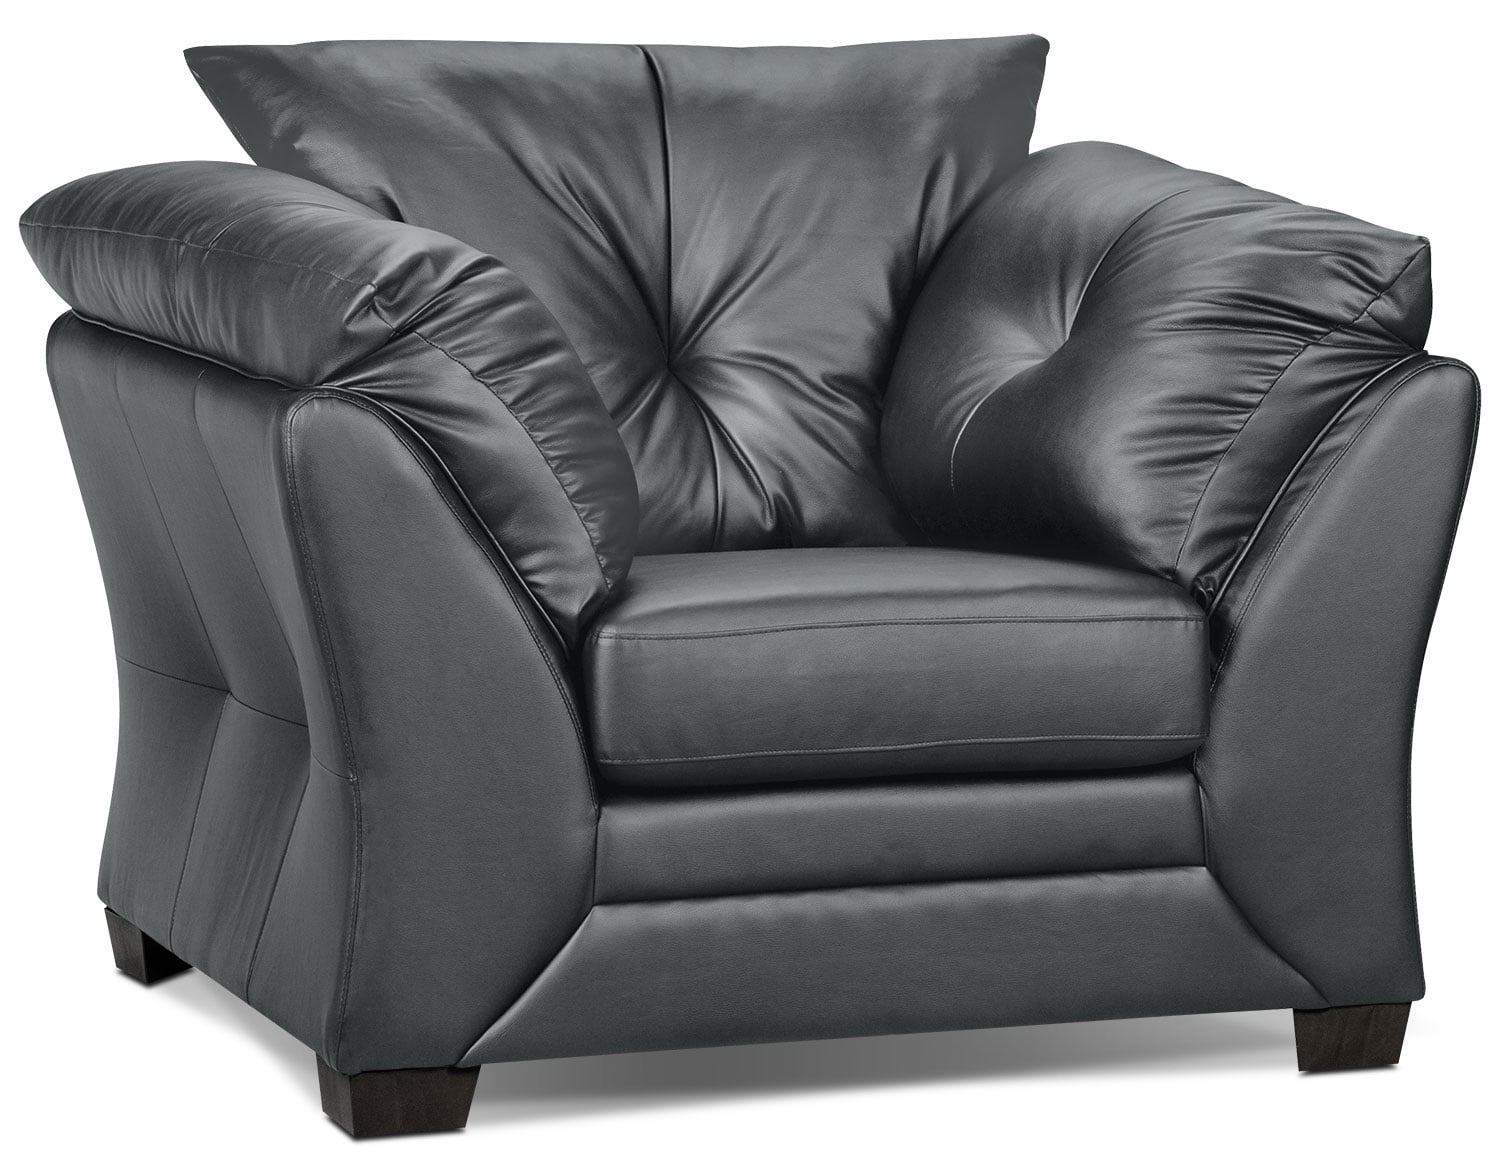 Living Room Furniture - Max Faux Leather Chair - Grey